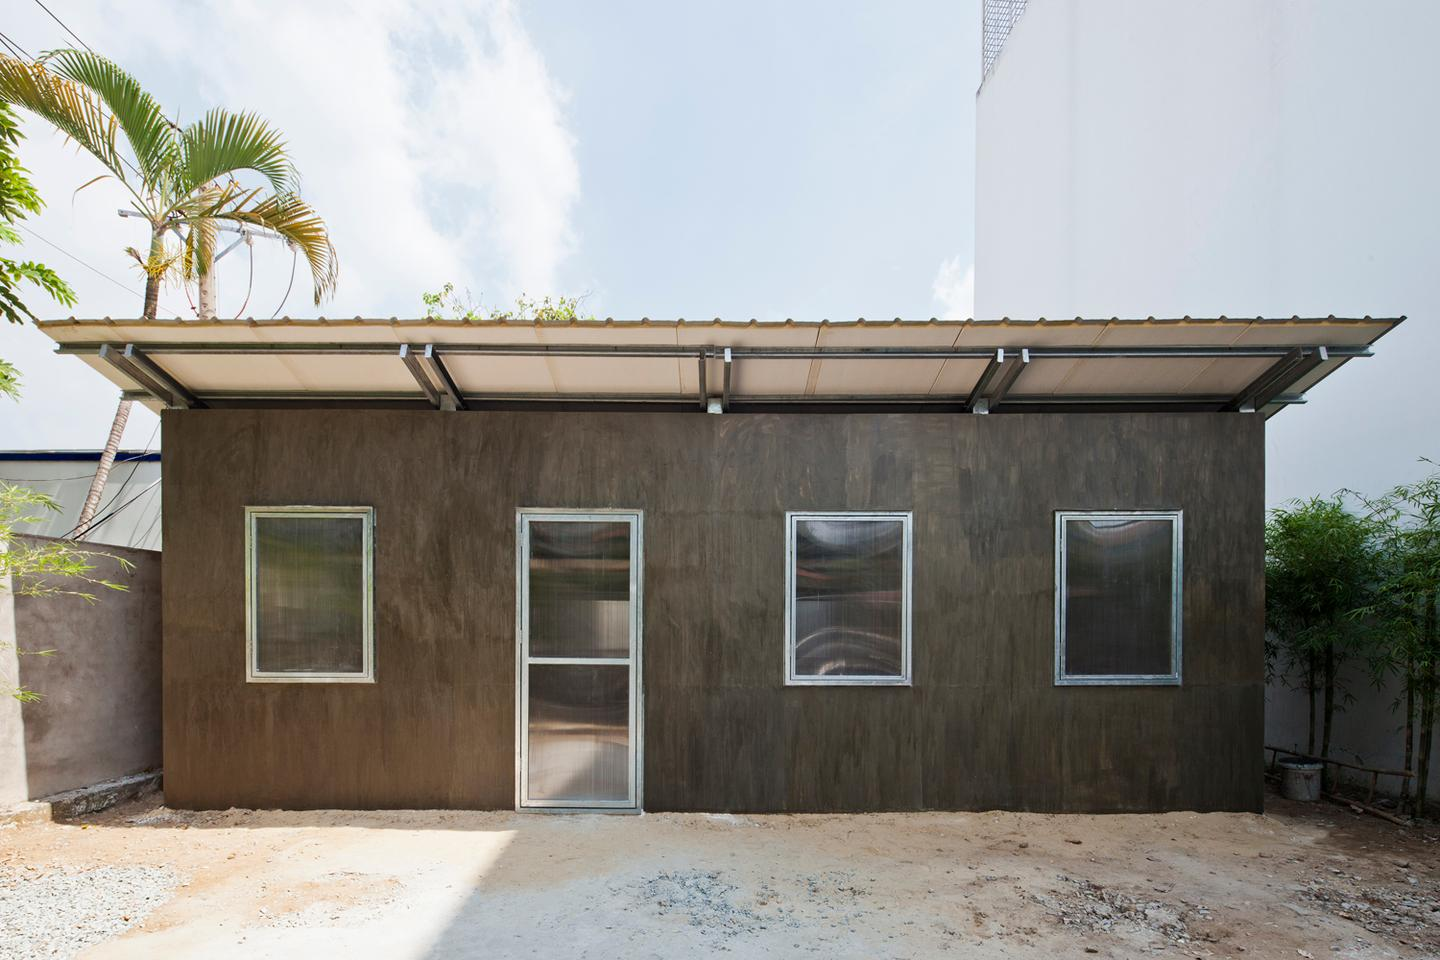 """The aim of this serial project is to provide stable but lightweight, permanent but affordable homes for low-income earners in a harsh tropical climate,"" says Vo Trong Nghia (Photo: Hiroyuki Oki)"